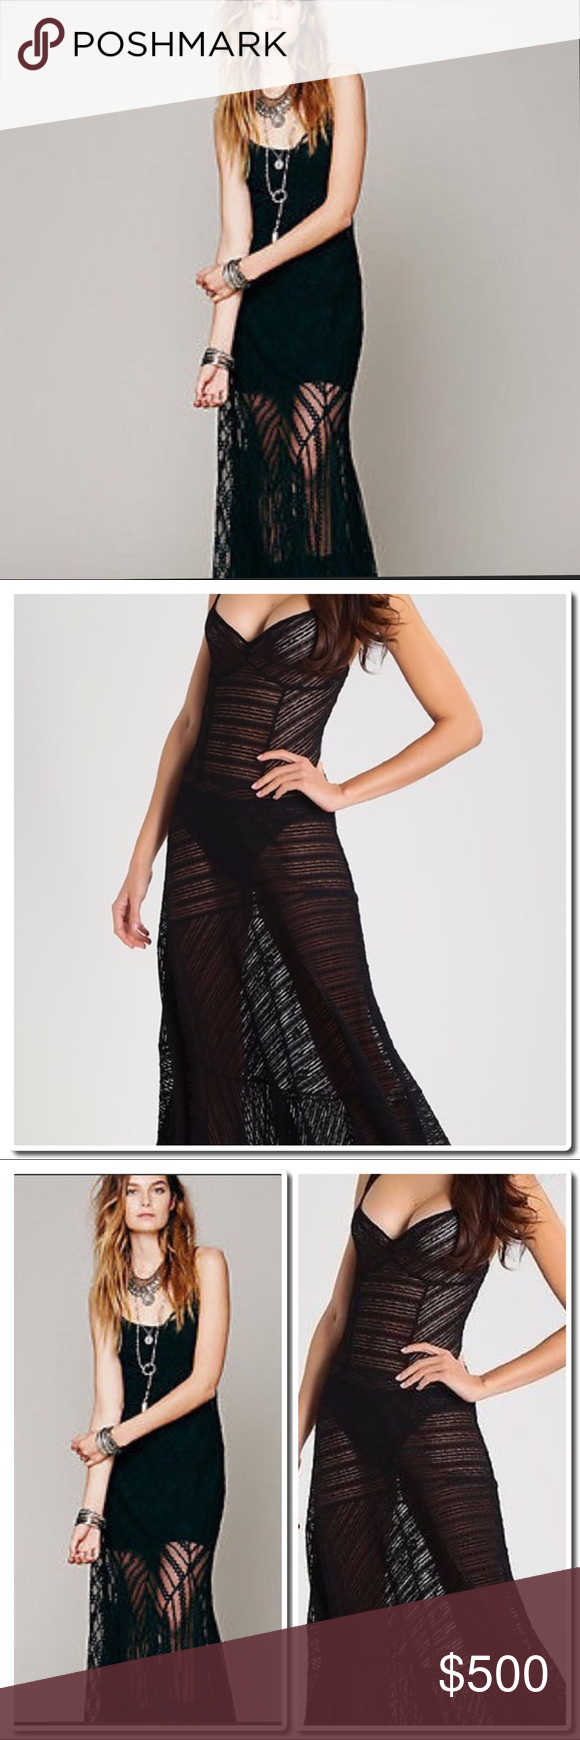 """Free People Lace Maxi Slip Dress - Scoop neck  - Tank top straps - Scoop back - Sheer construction - Approx. 56"""" length (size S) - Imported Fiber Content 90% nylon, 10% spandex Care Machine wash Additional Info. - Slip not included . Free People Dresses Maxi"""